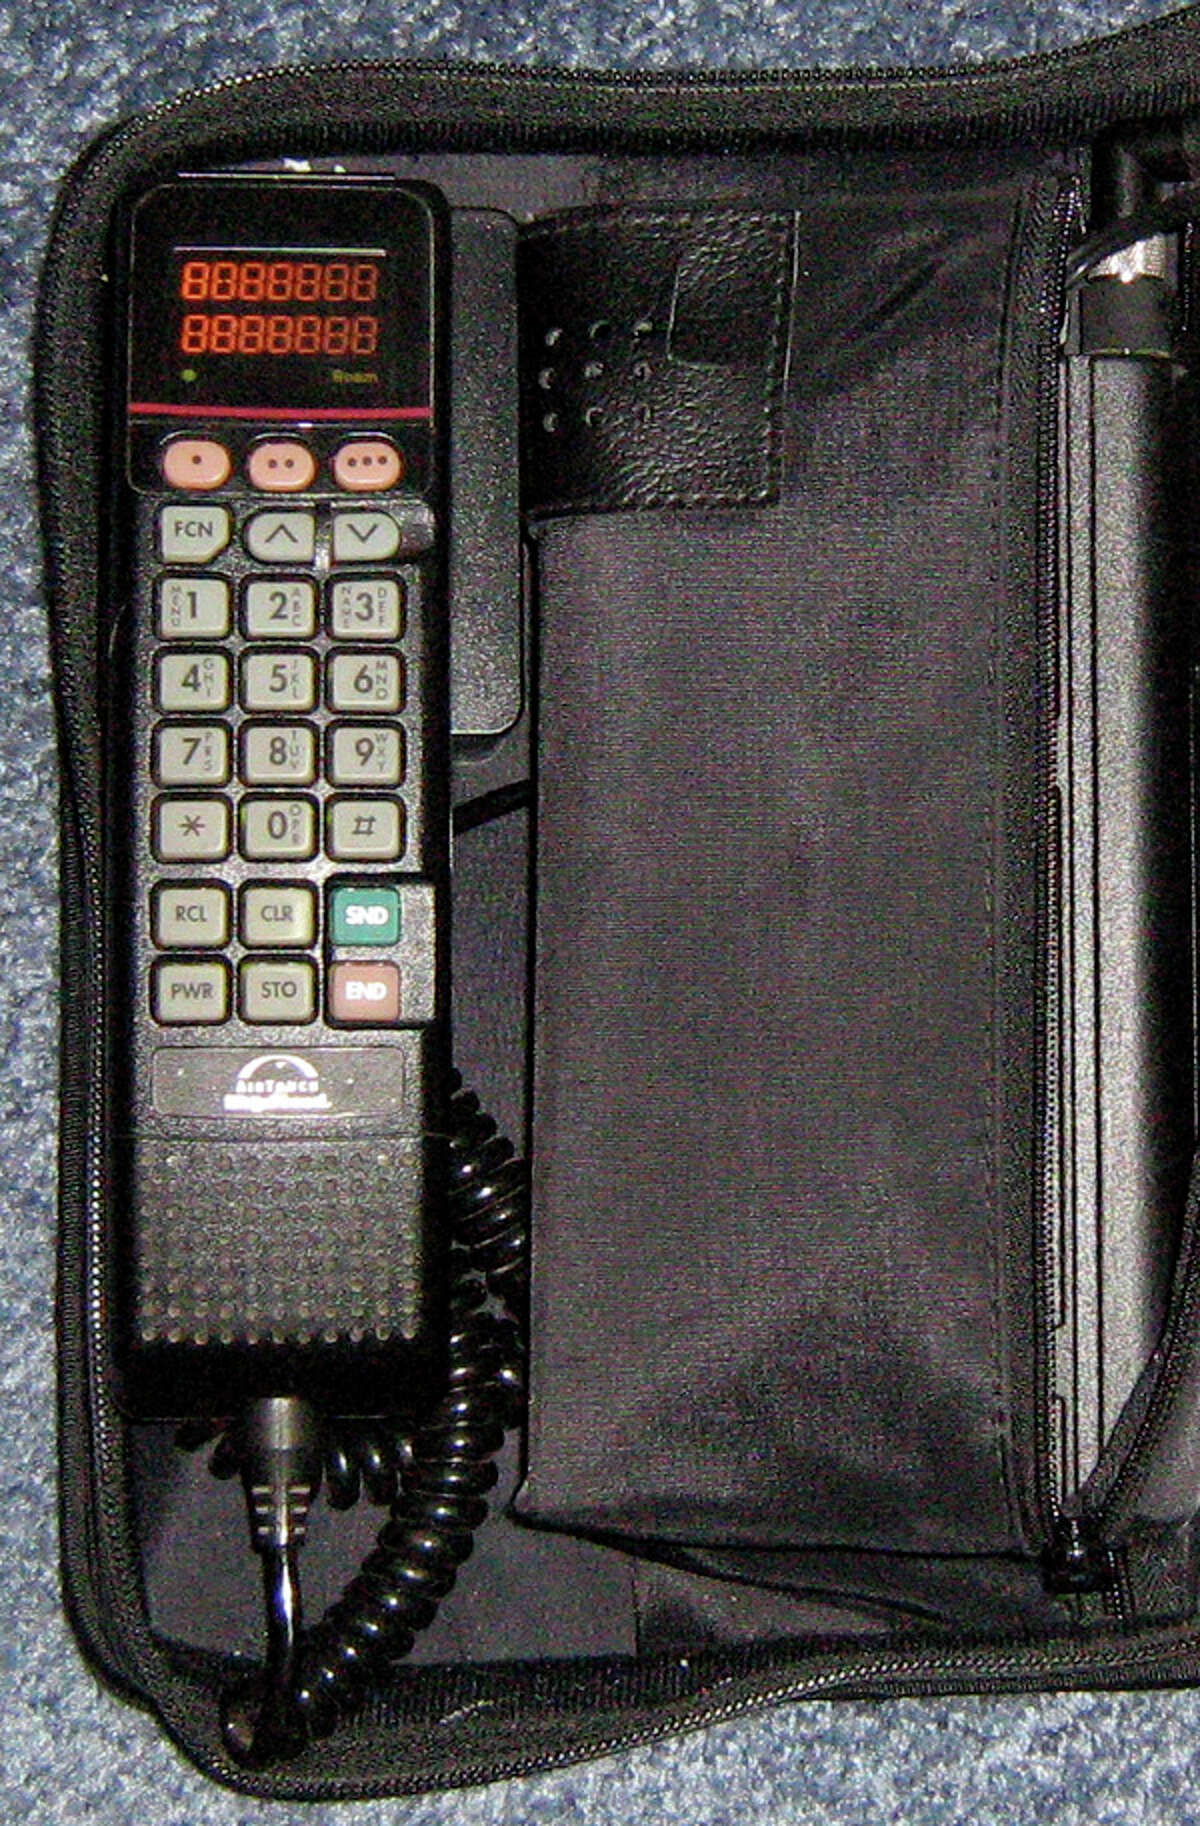 The Motorola 2950 bag phone. (Shot by Redrum0496. Licensed under CC BY-SA 3.0. Via Wikipedia.)